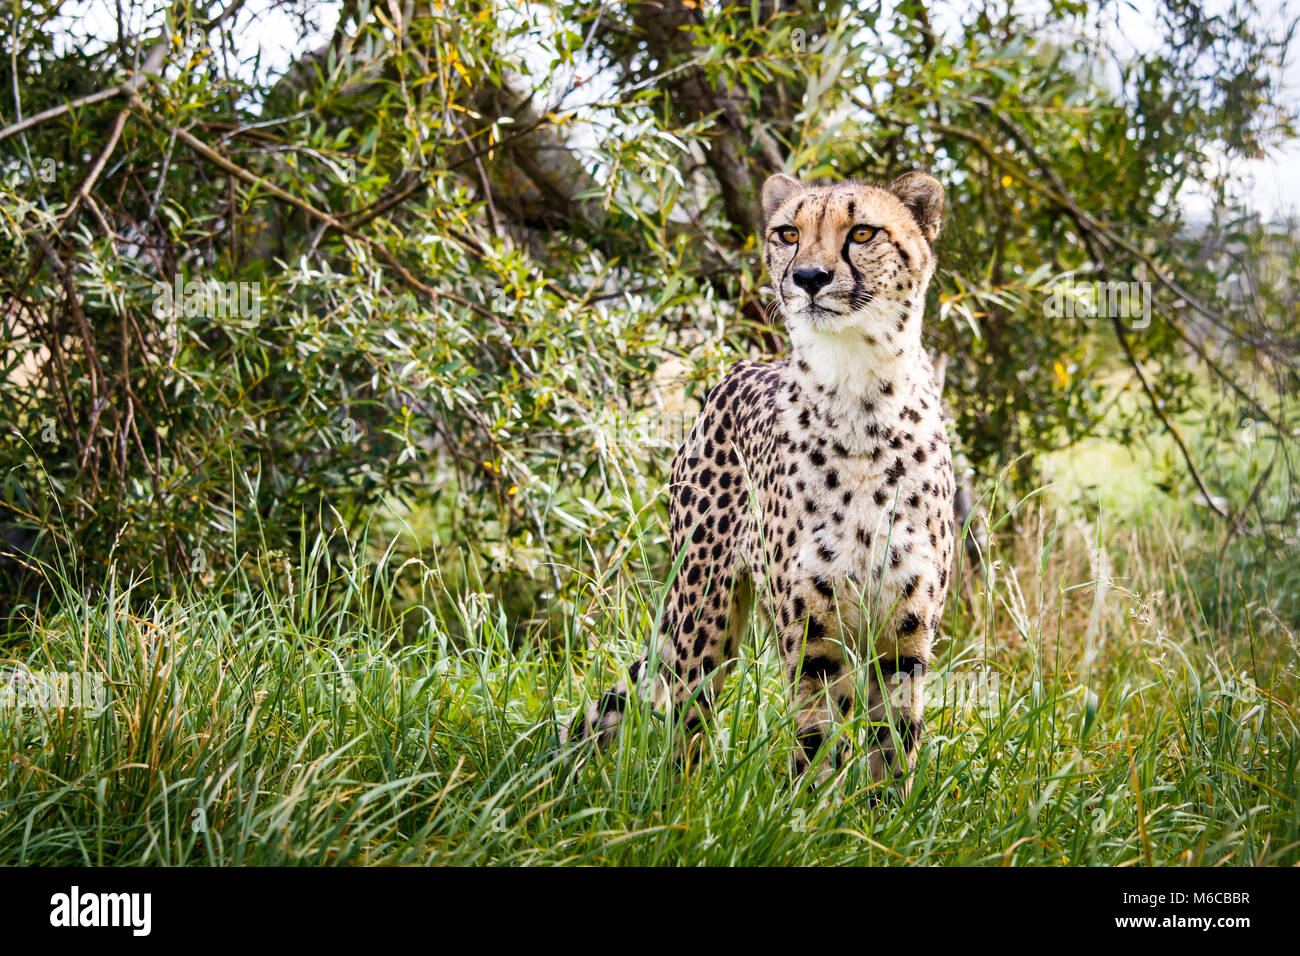 Cheetah standing tall in grass with tree background - Stock Image